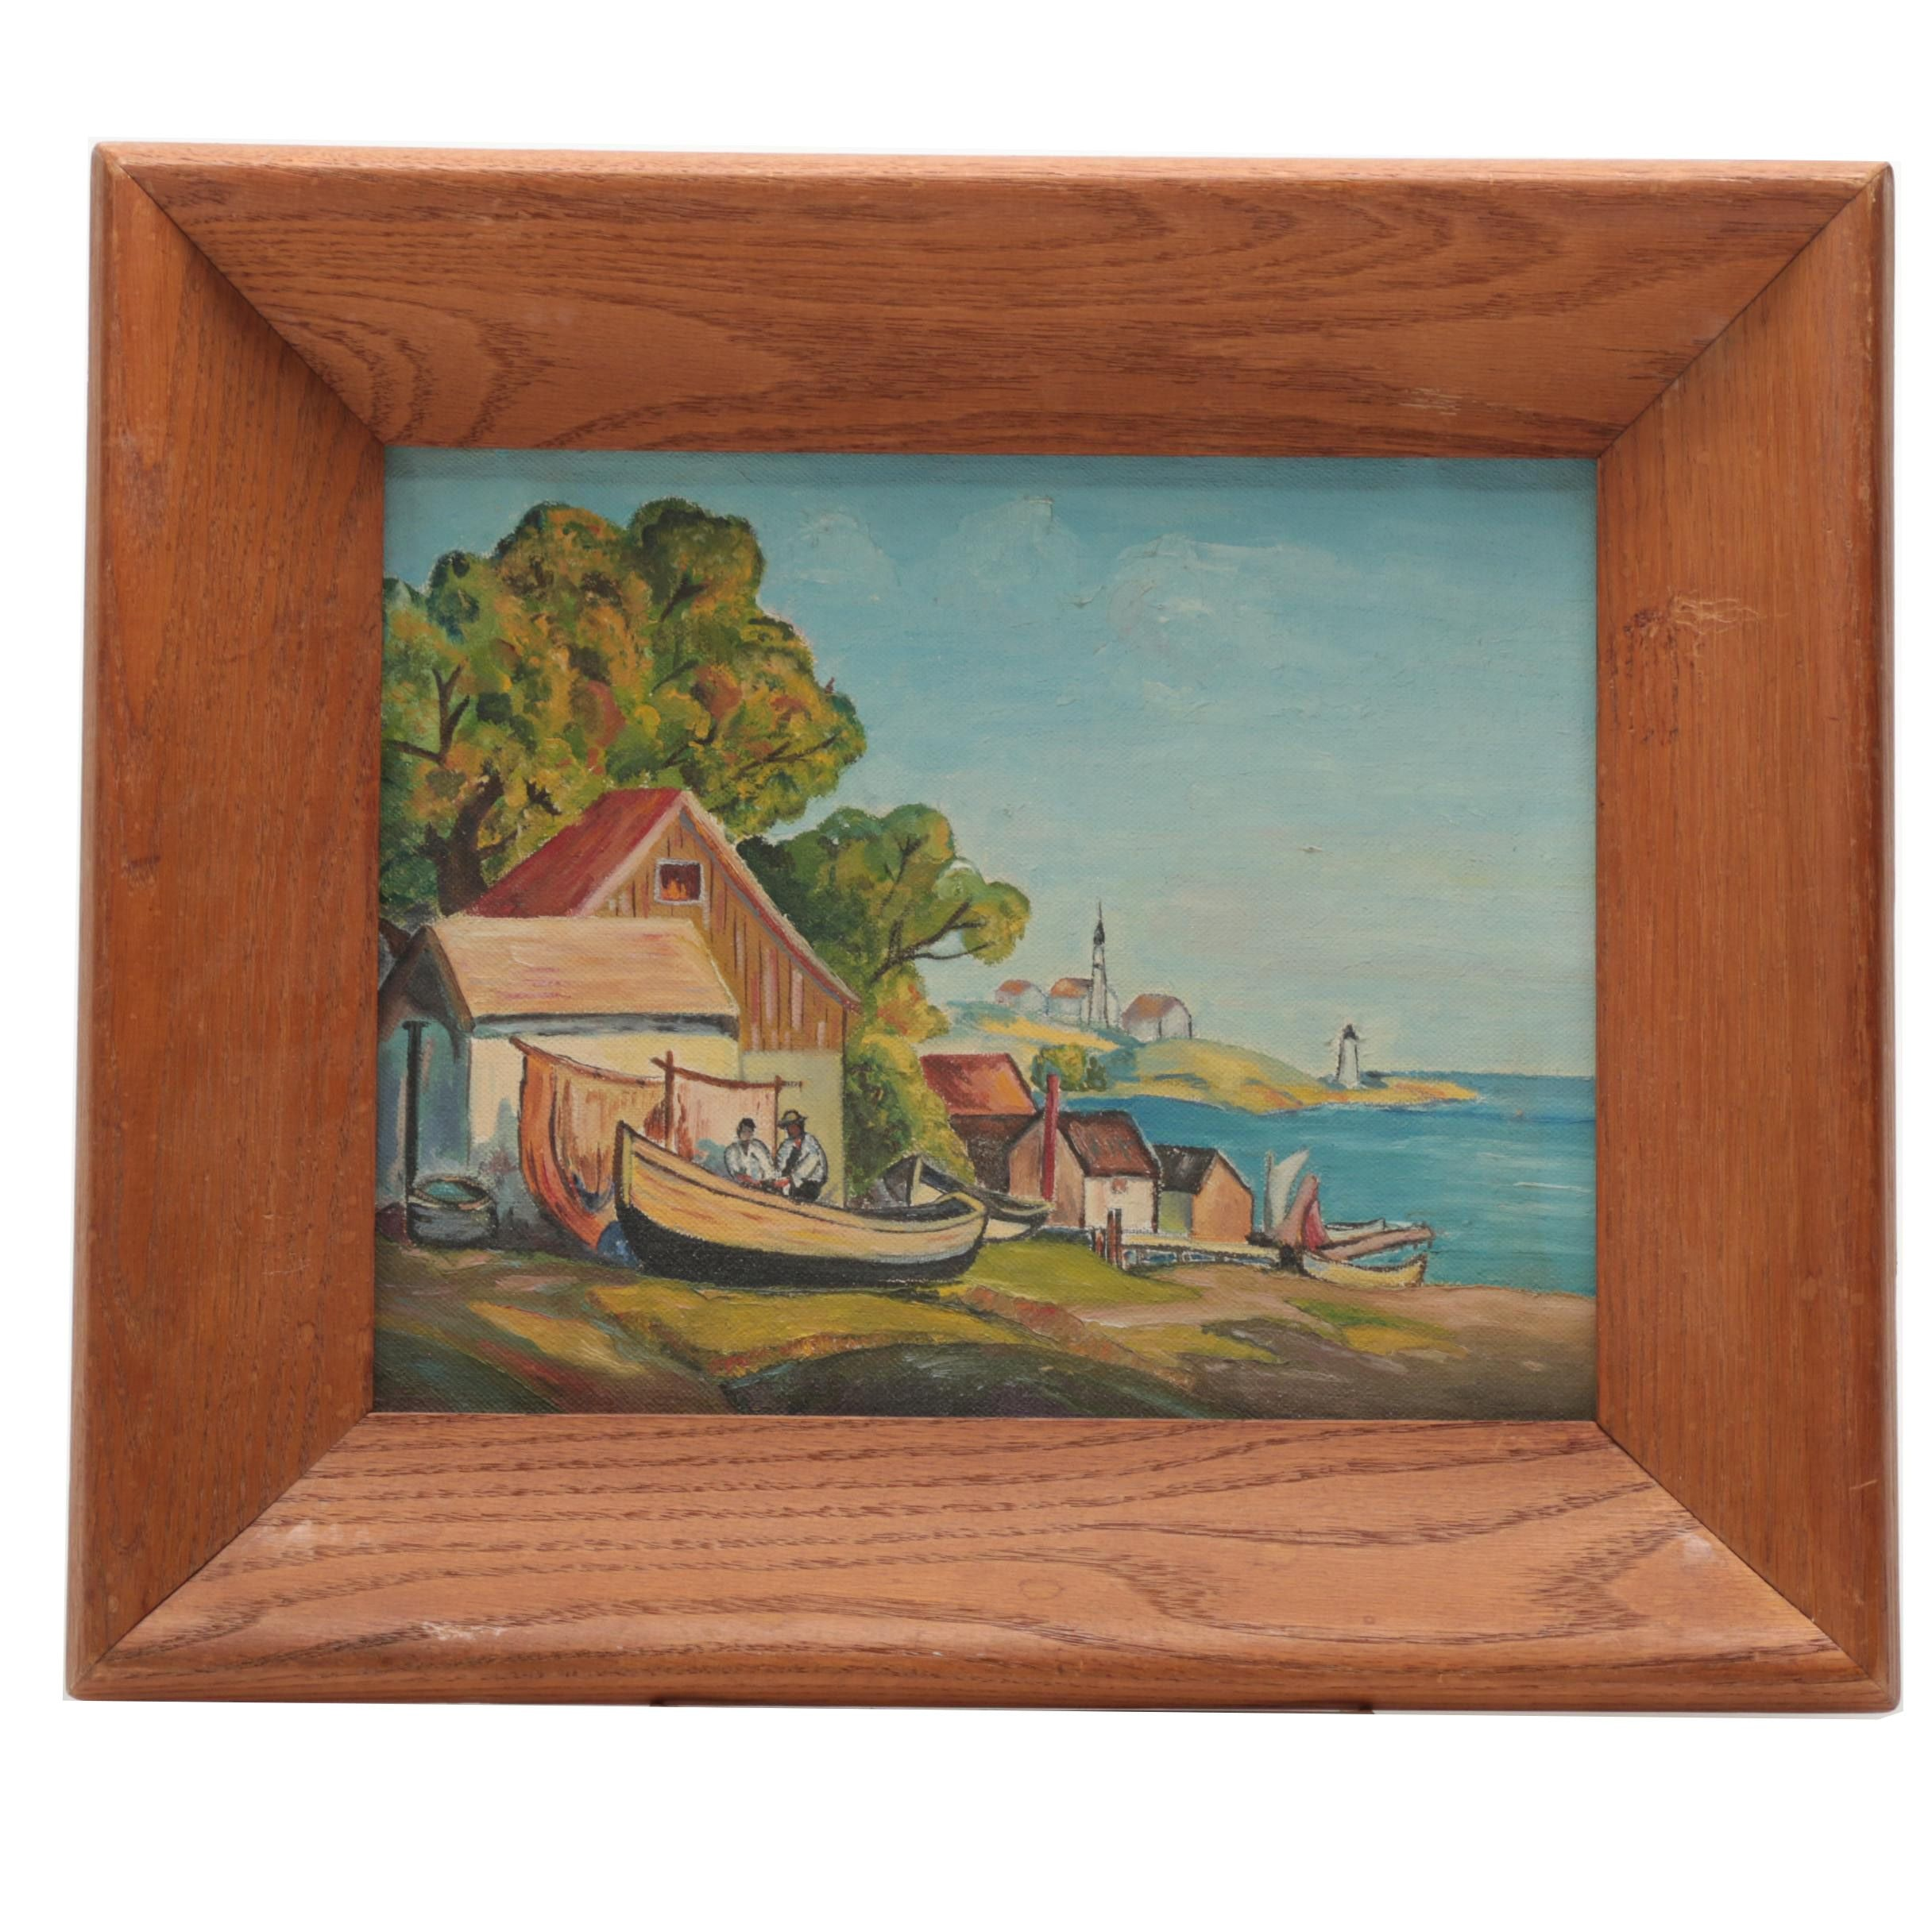 Framed Oil Painting of a Marina